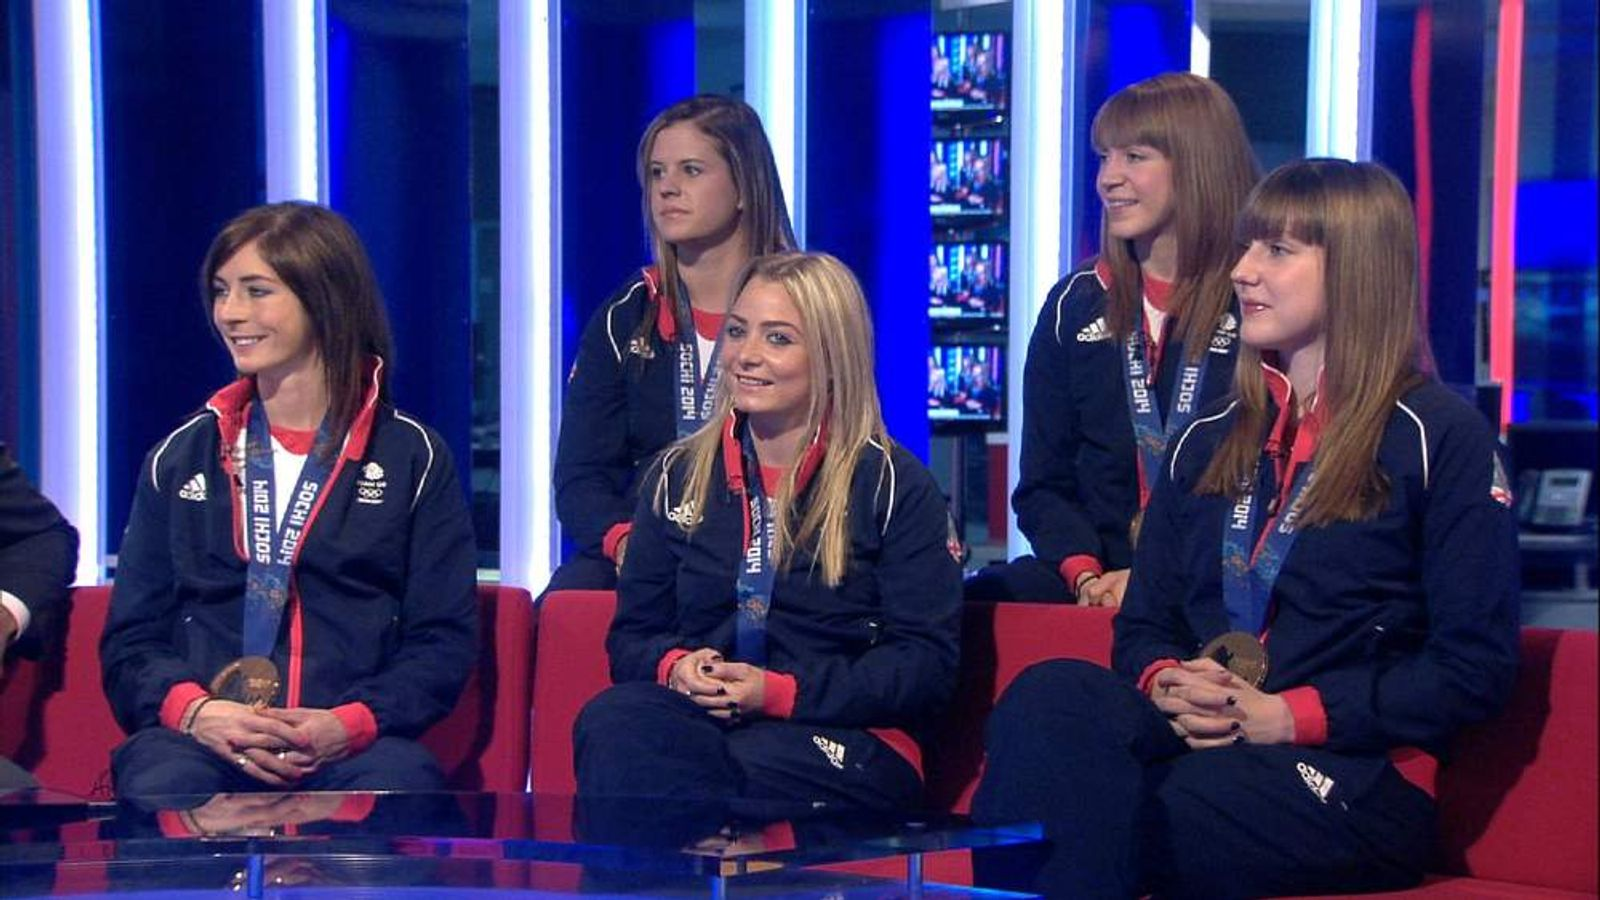 250214 SUNRISE TEAM GB CURLING